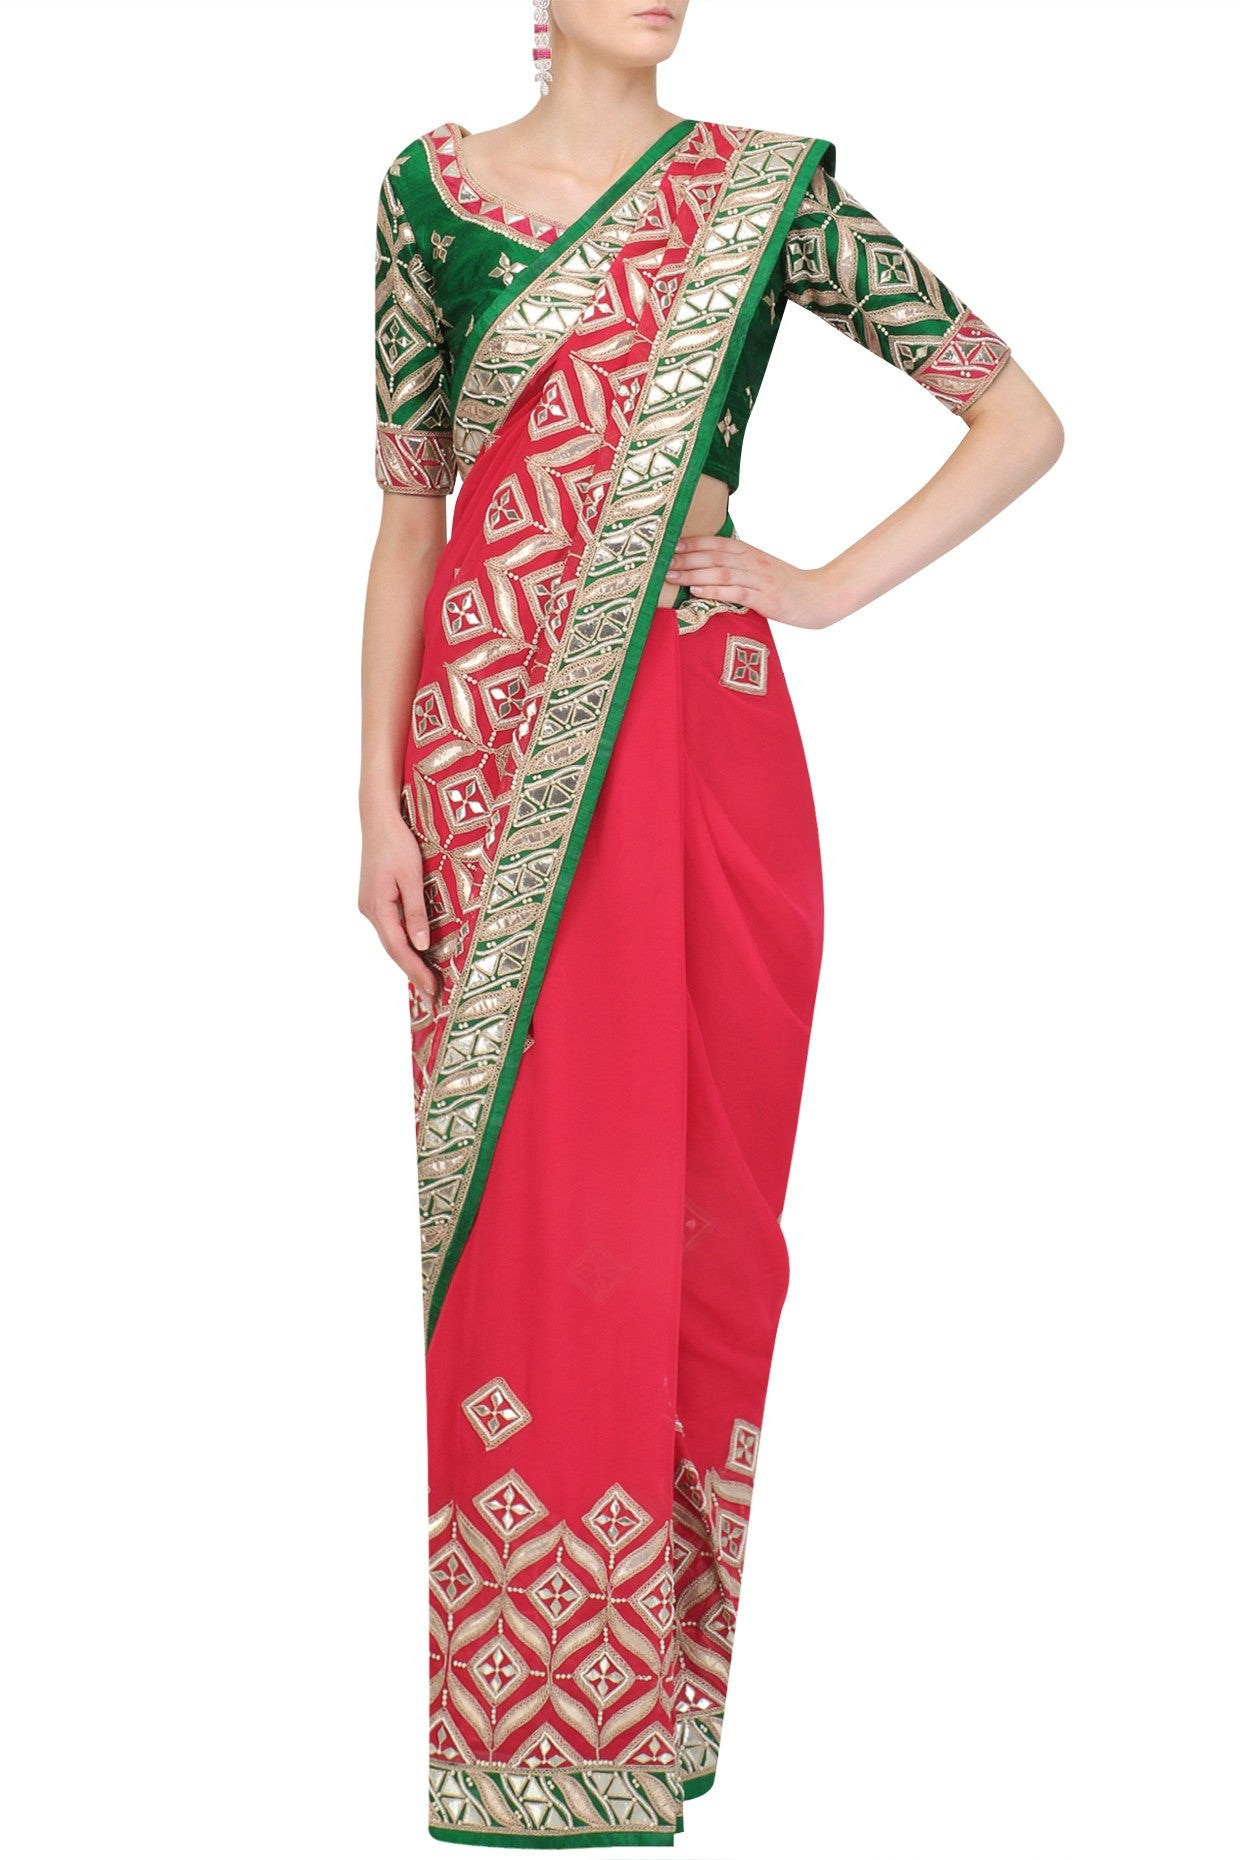 ranas-by-kshitija-radiant-red-handcut-gota-patti-saree